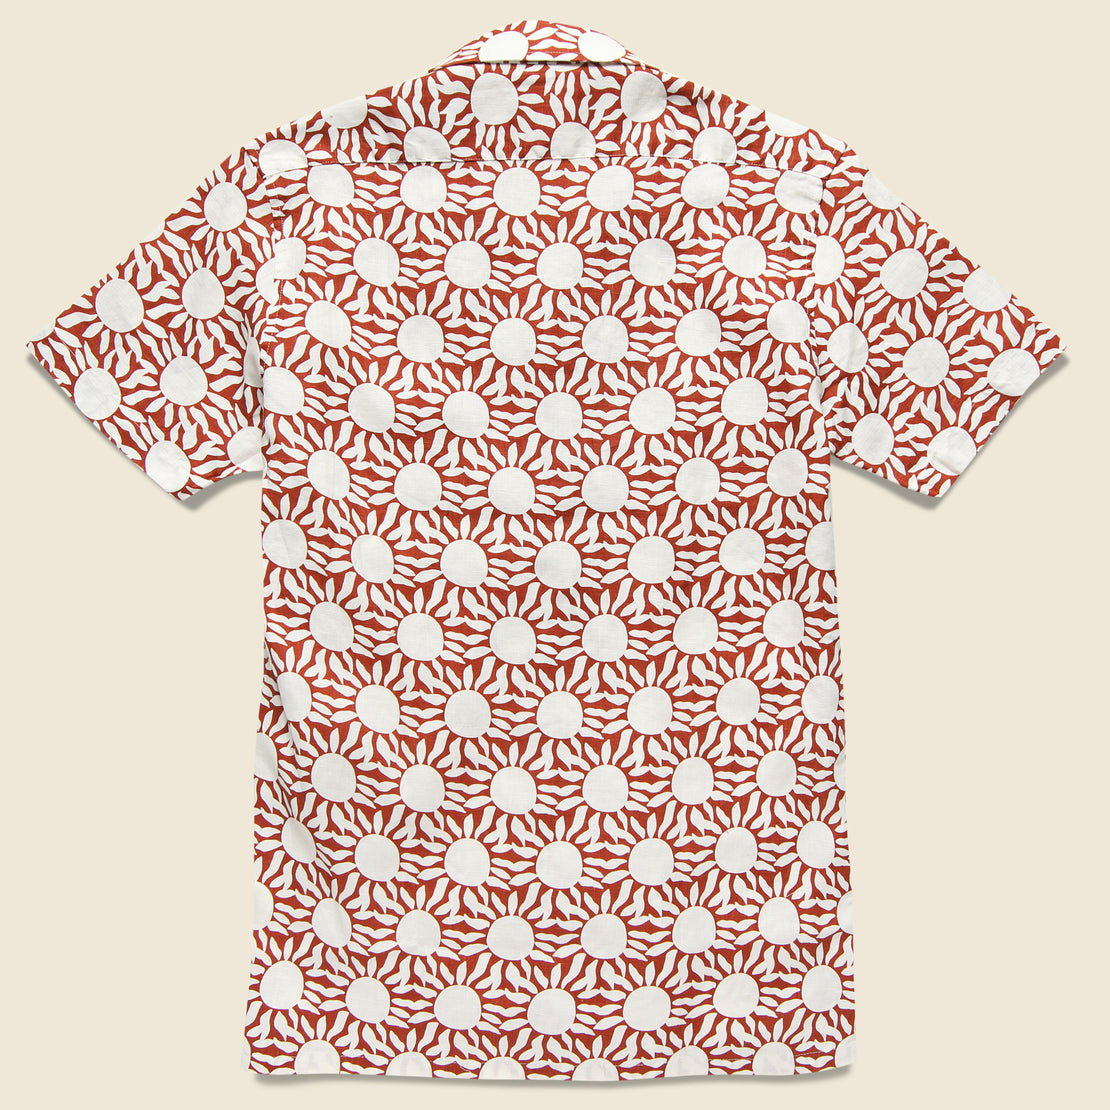 Selleck Shirt - Sun